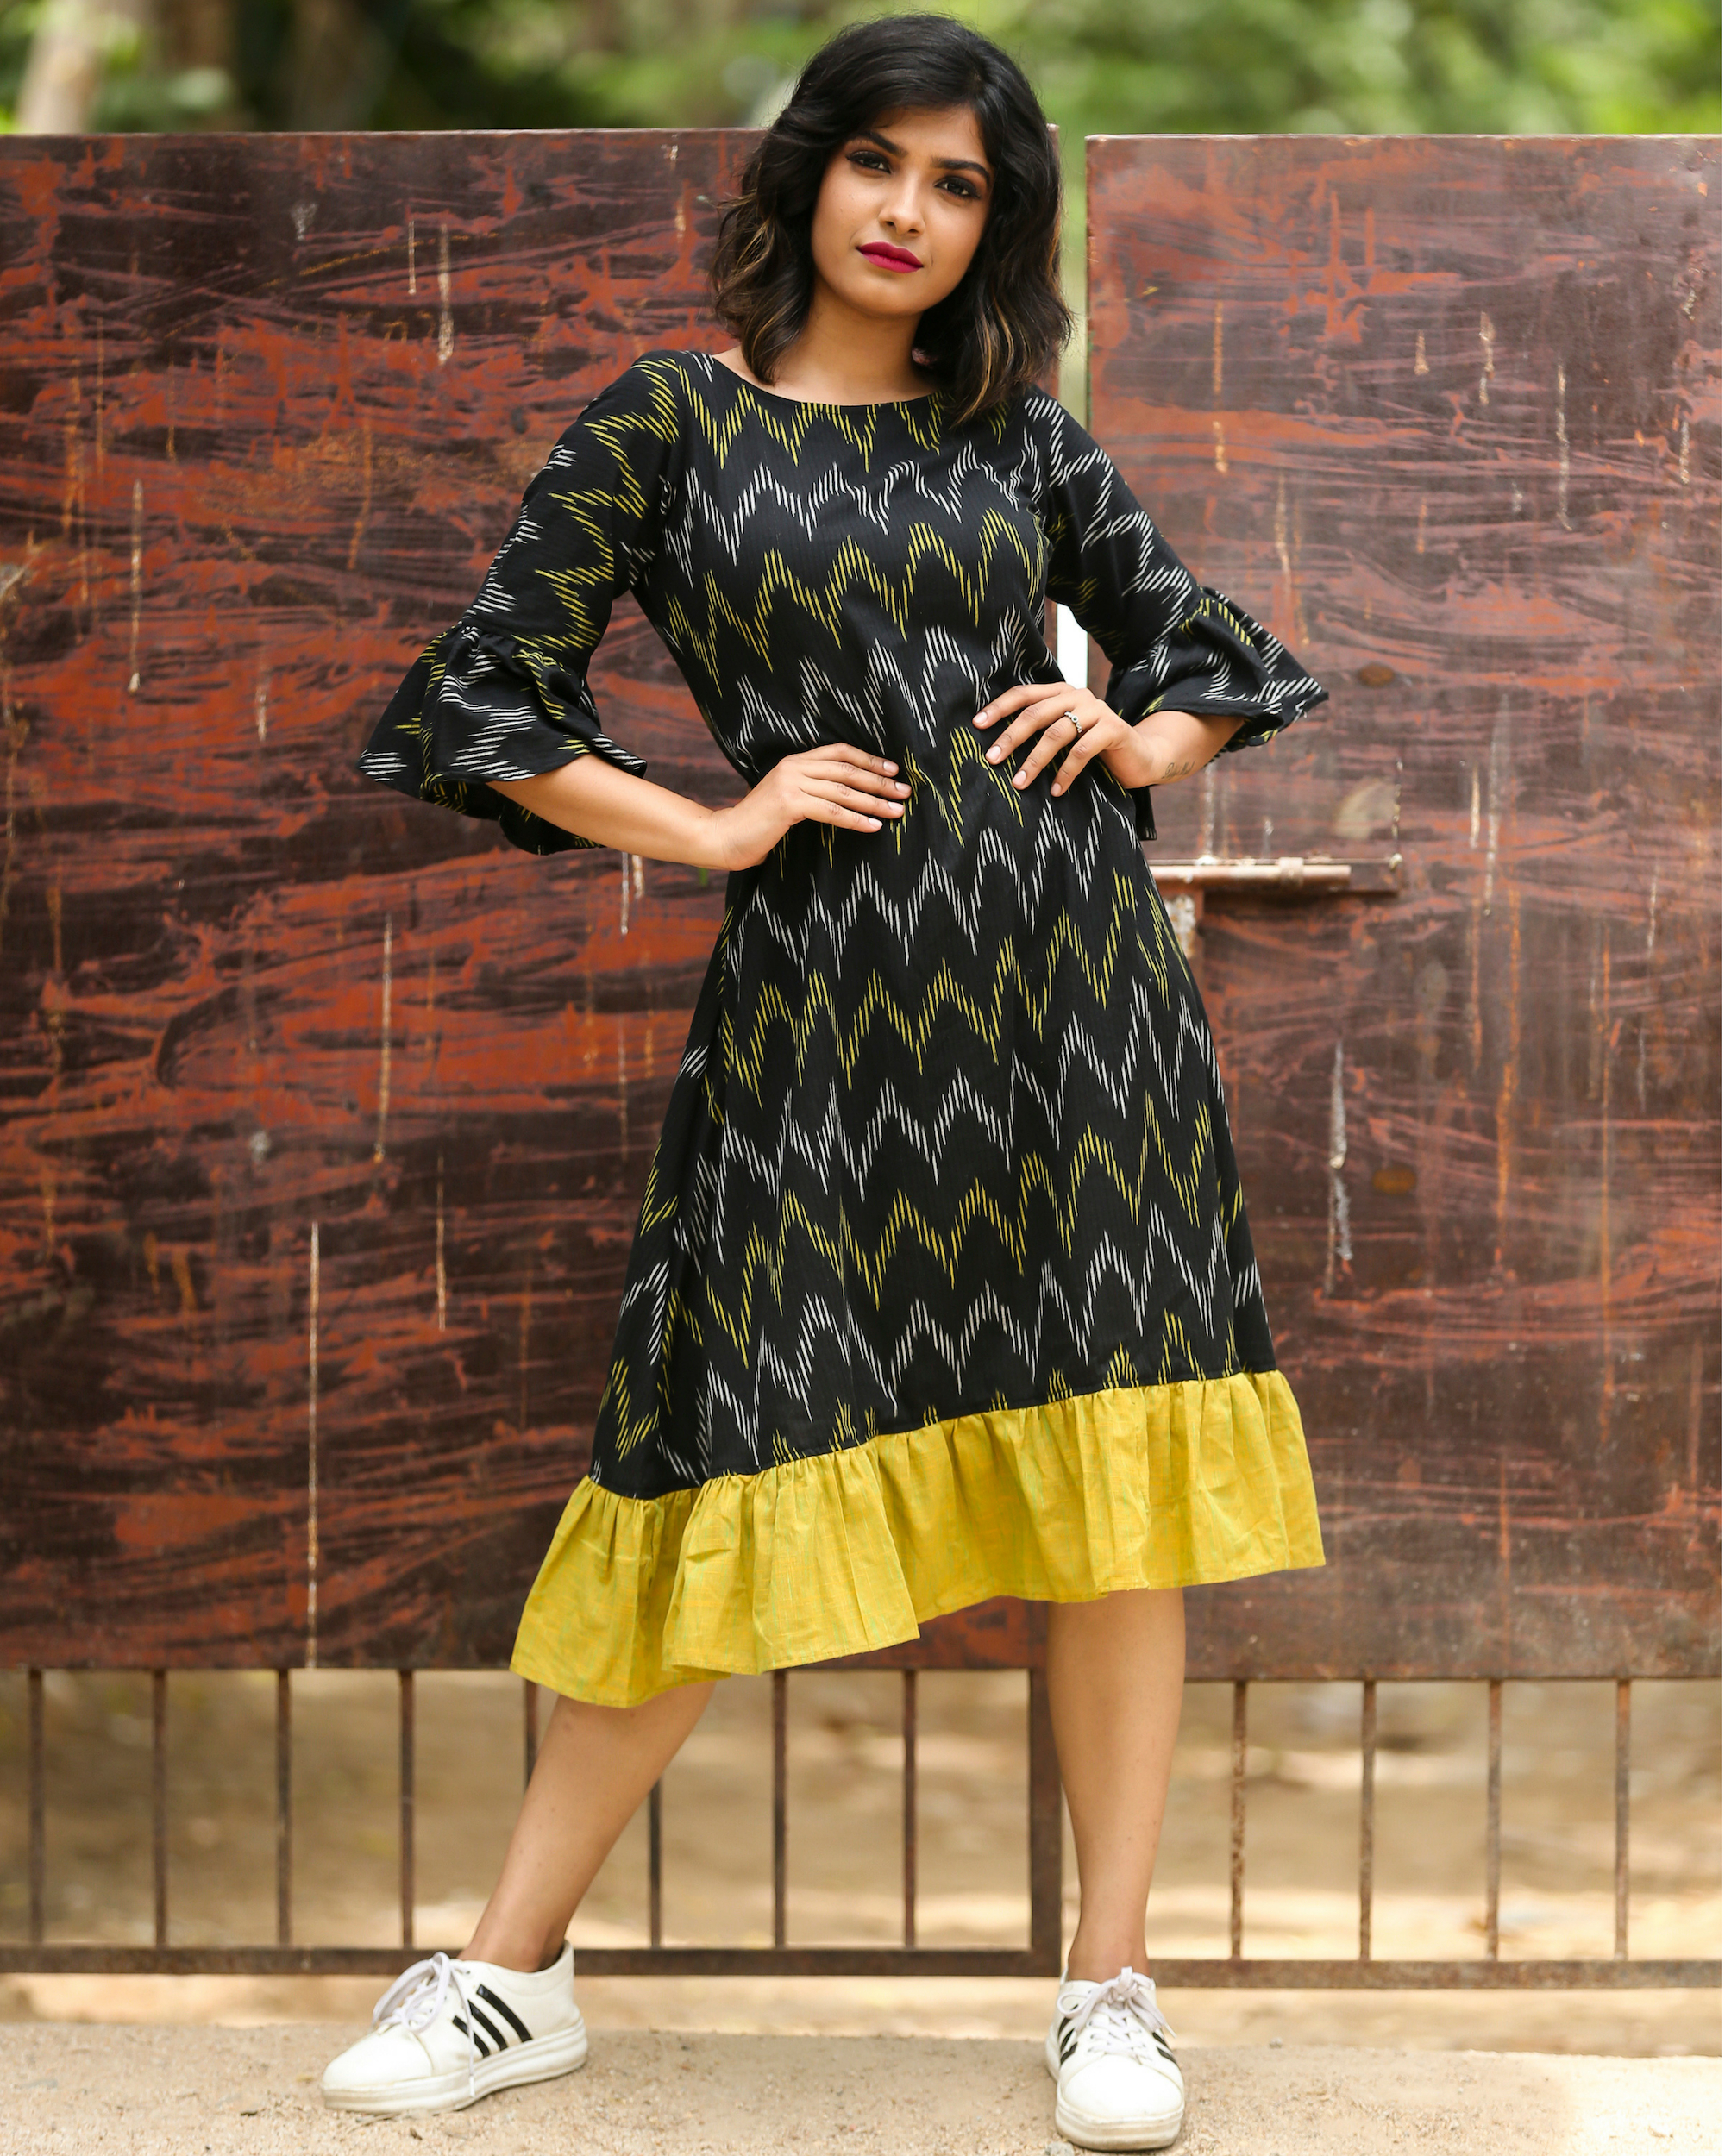 Black and green ikat dress